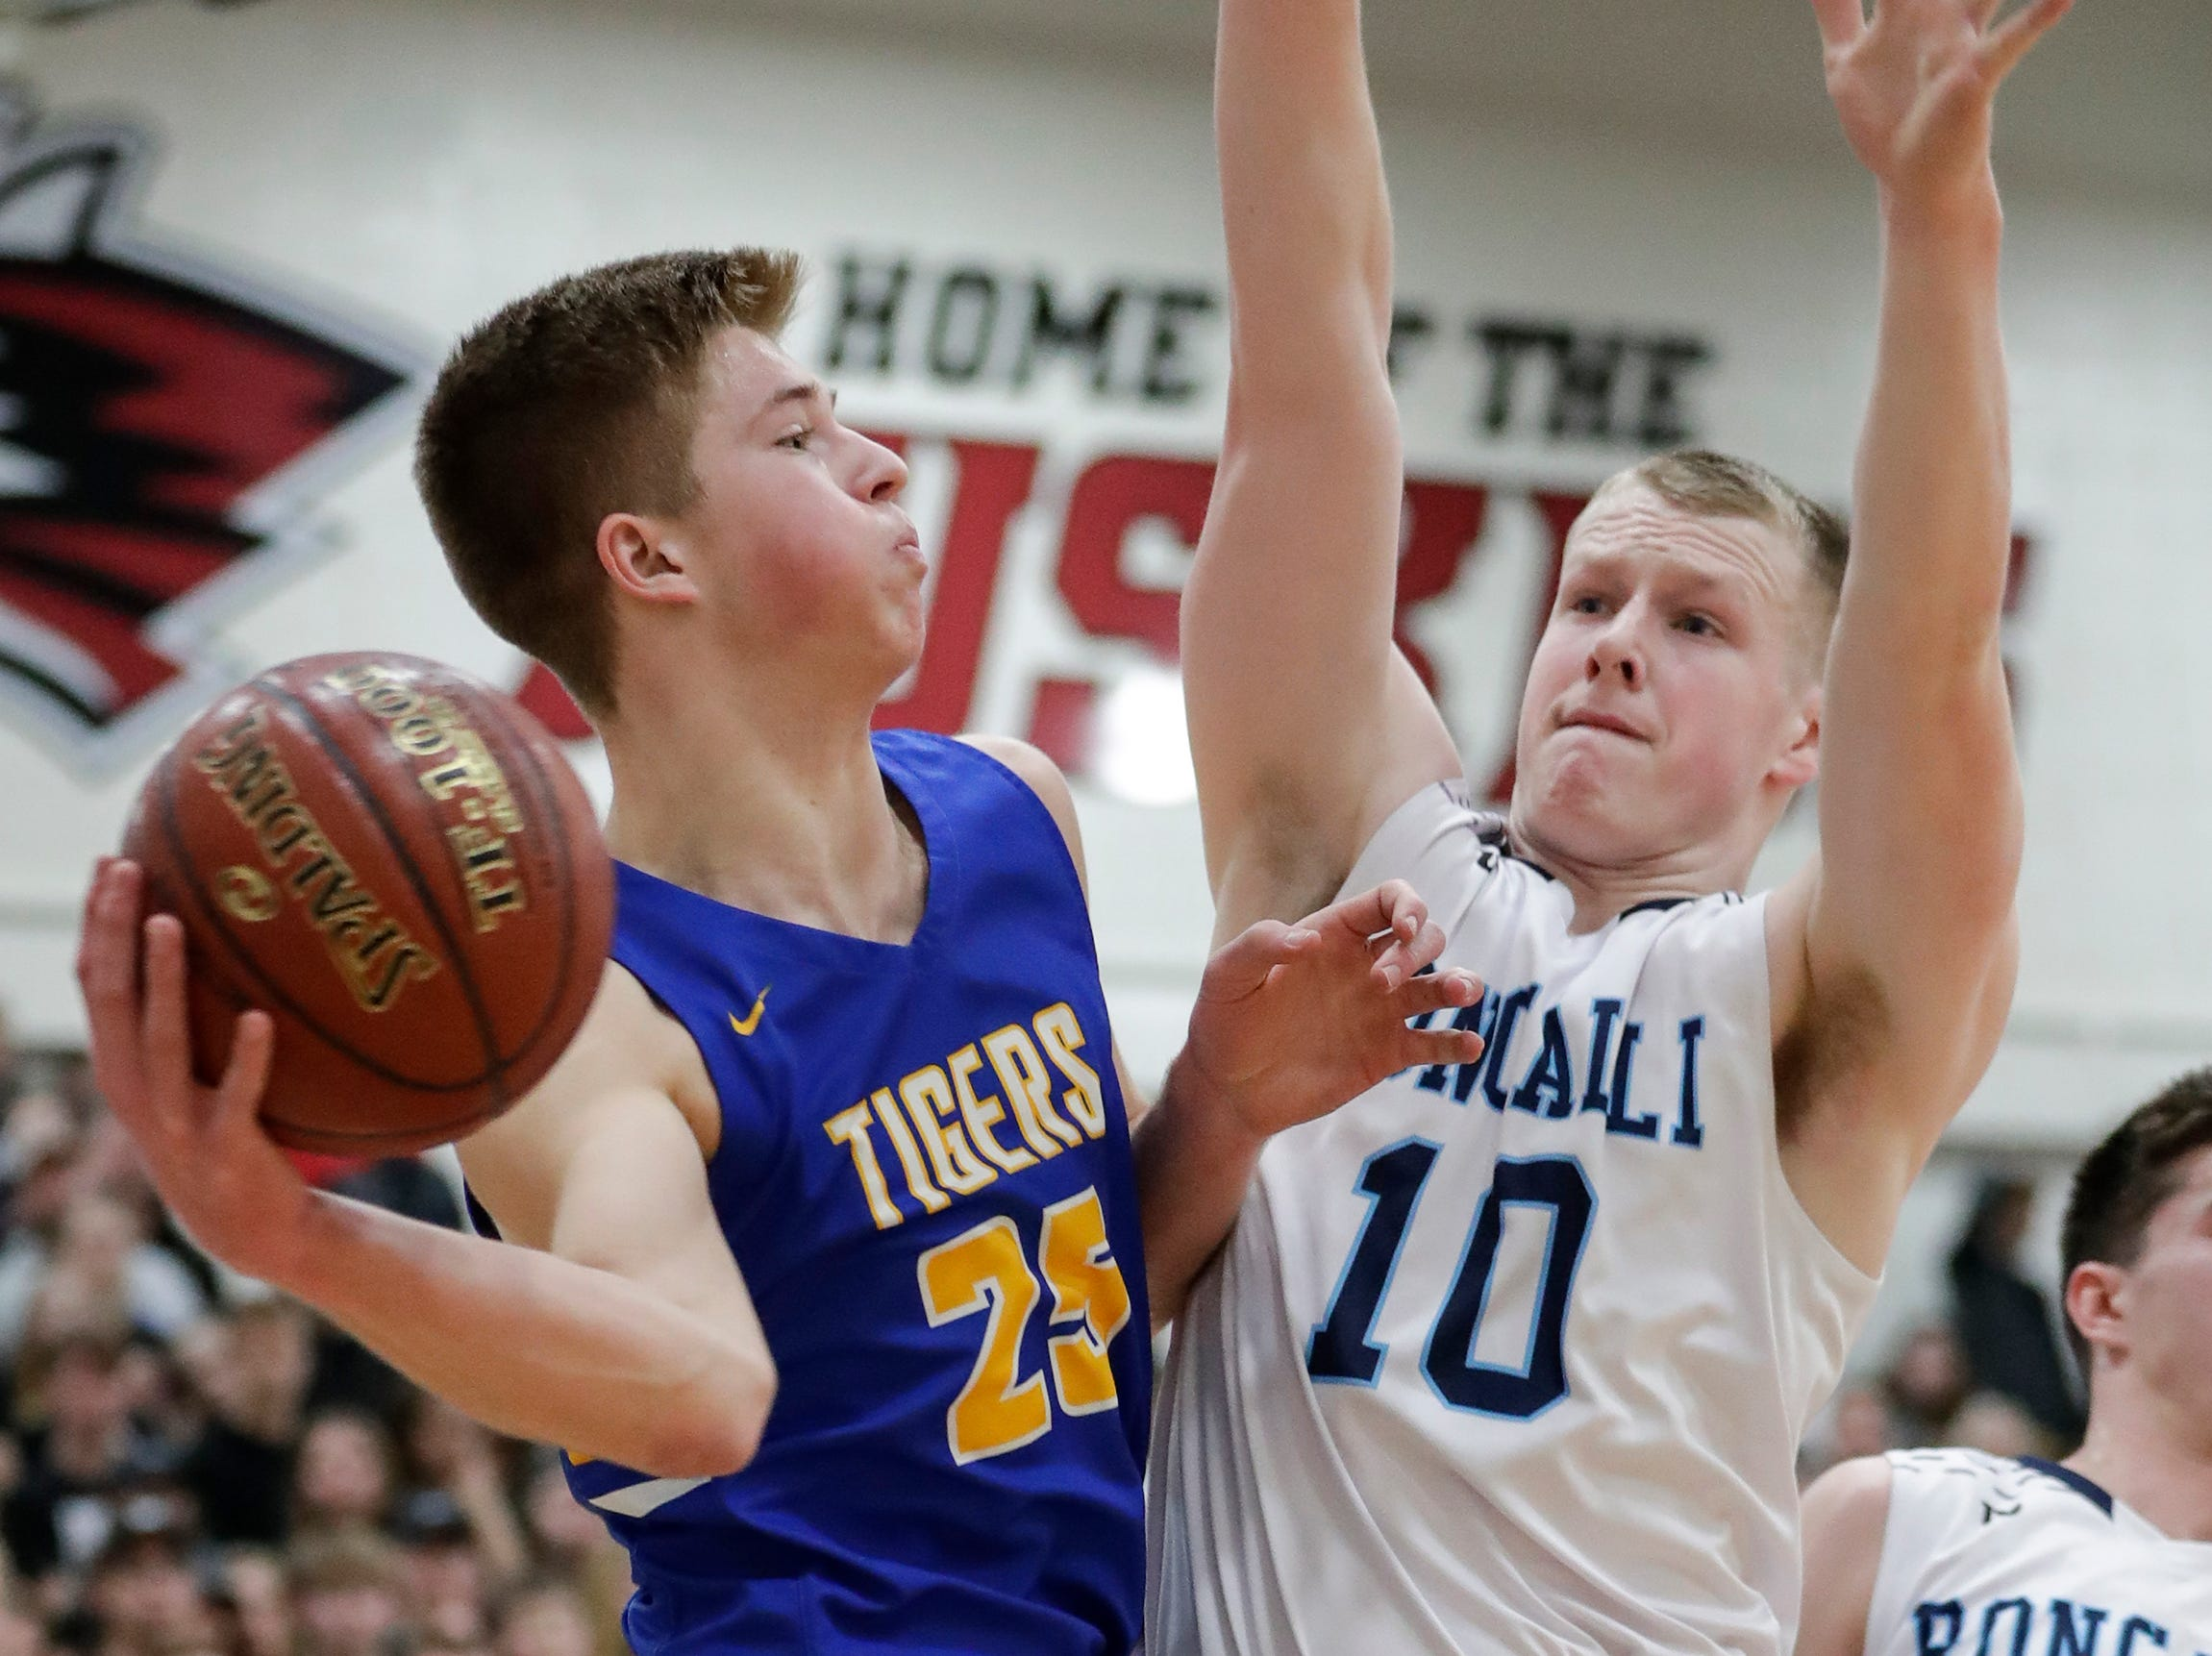 Howards Grove's Jack Baldwin (25) looks for an open teammate as he gets pressure from Roncalli's Matt Le Vene (10) during a WIAA Division 4 sectional semifinal at New Holstein High School Thursday, March 7, 2019, in New Holstein, Wis. Joshua Clark/USA TODAY NETWORK-Wisconsin